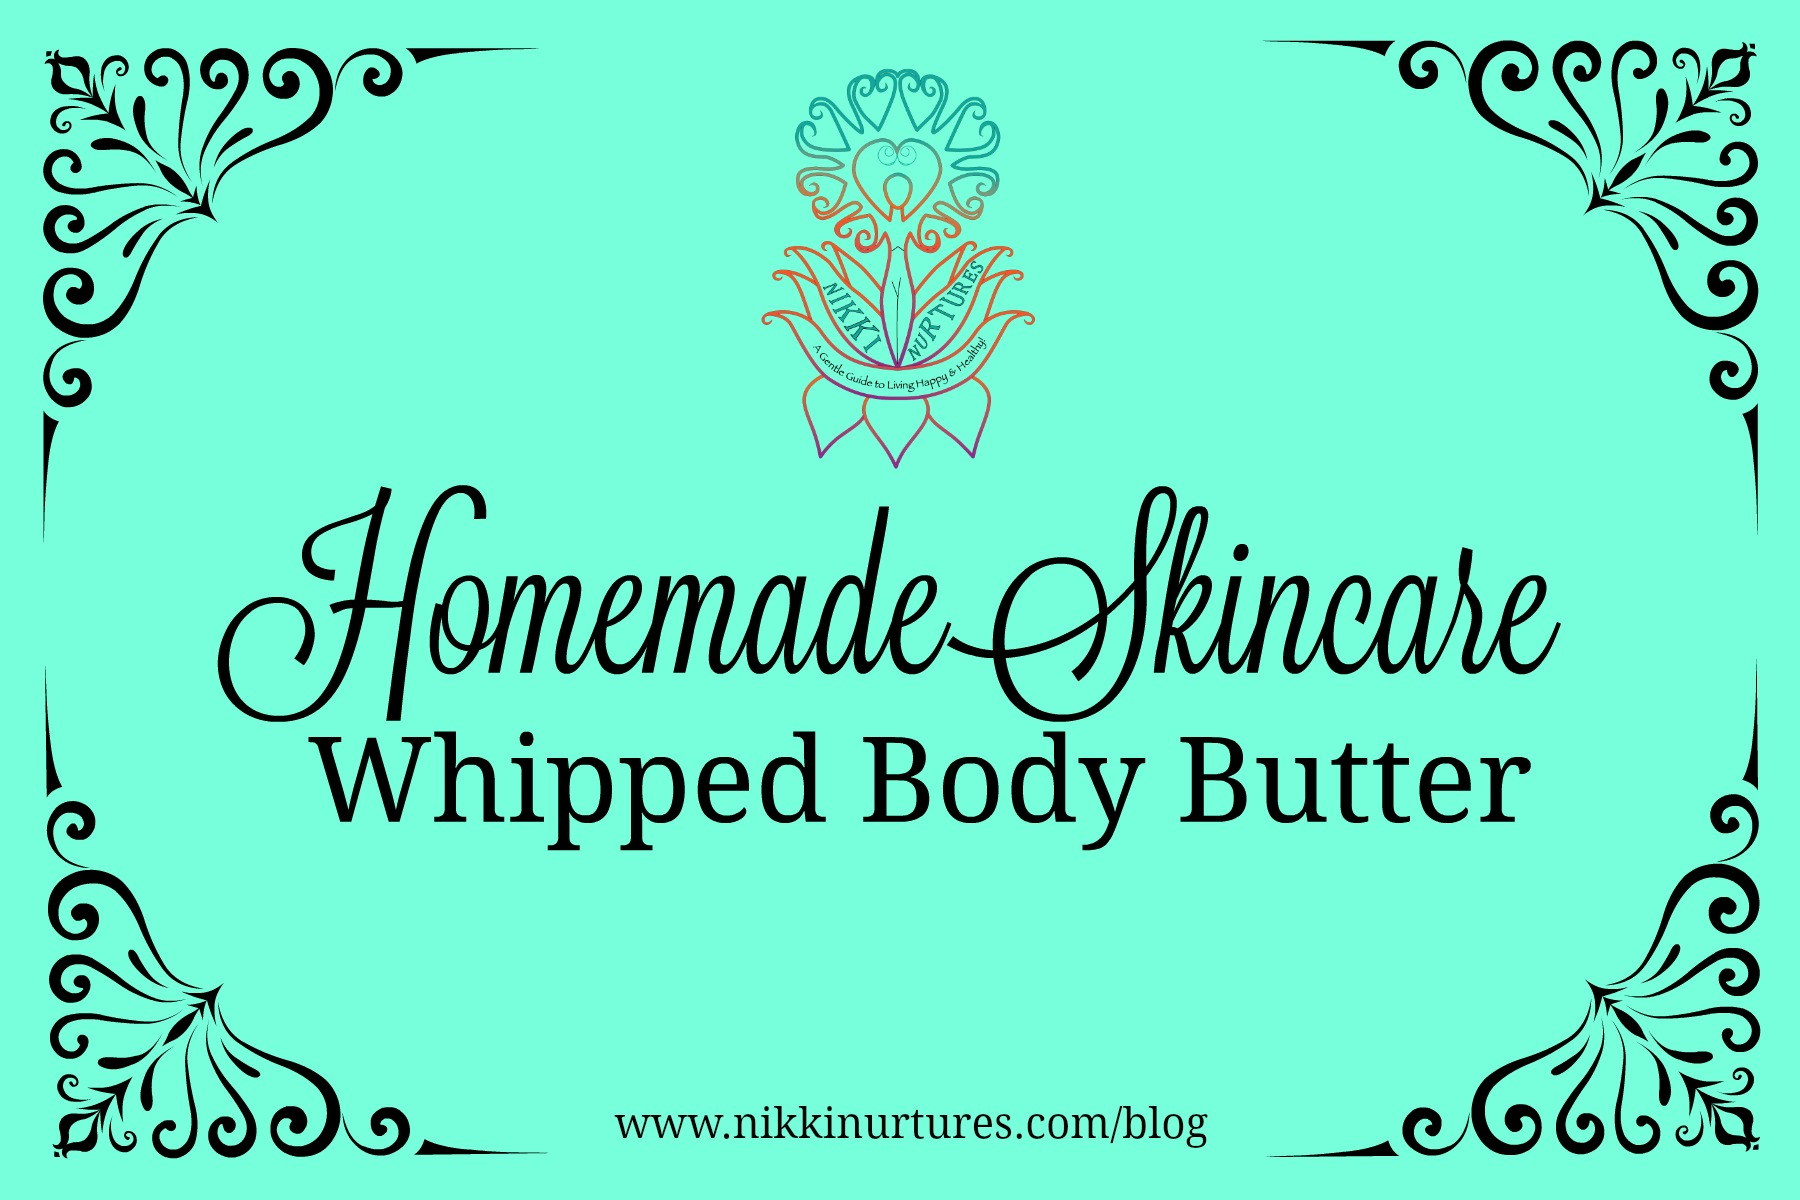 Homemade Skincare: Whipped Body Butter Recipe